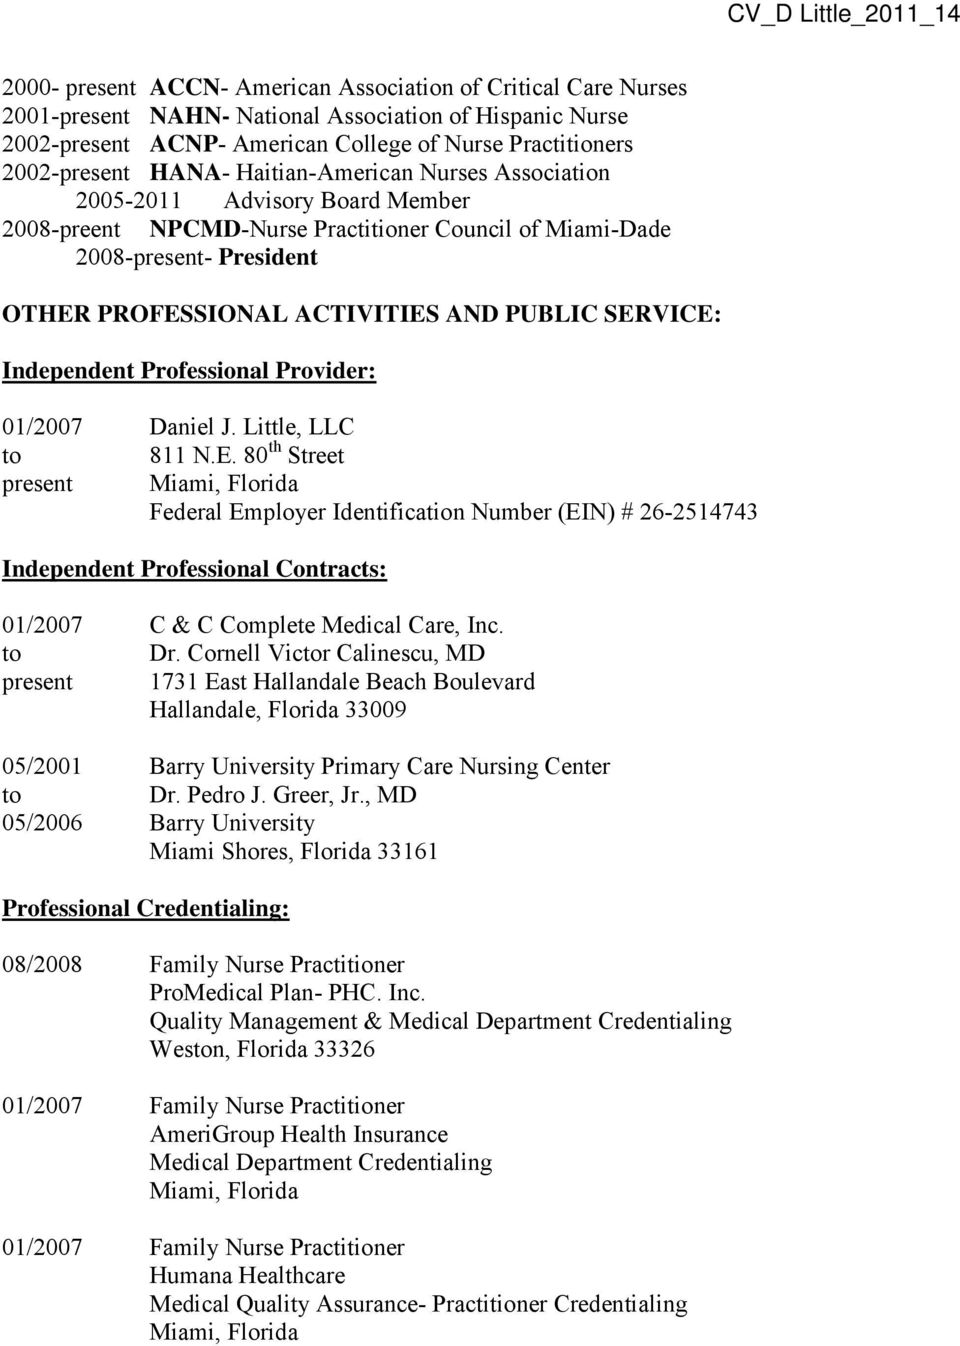 PROFESSIONAL ACTIVITIES AND PUBLIC SERVICE: Independent Professional Provider: 01/2007 Daniel J. Little, LLC to 811 N.E. 80 th Street present Federal Employer Identification Number (EIN) # 26-2514743 Independent Professional Contracts: 01/2007 C & C Complete Medical Care, Inc.